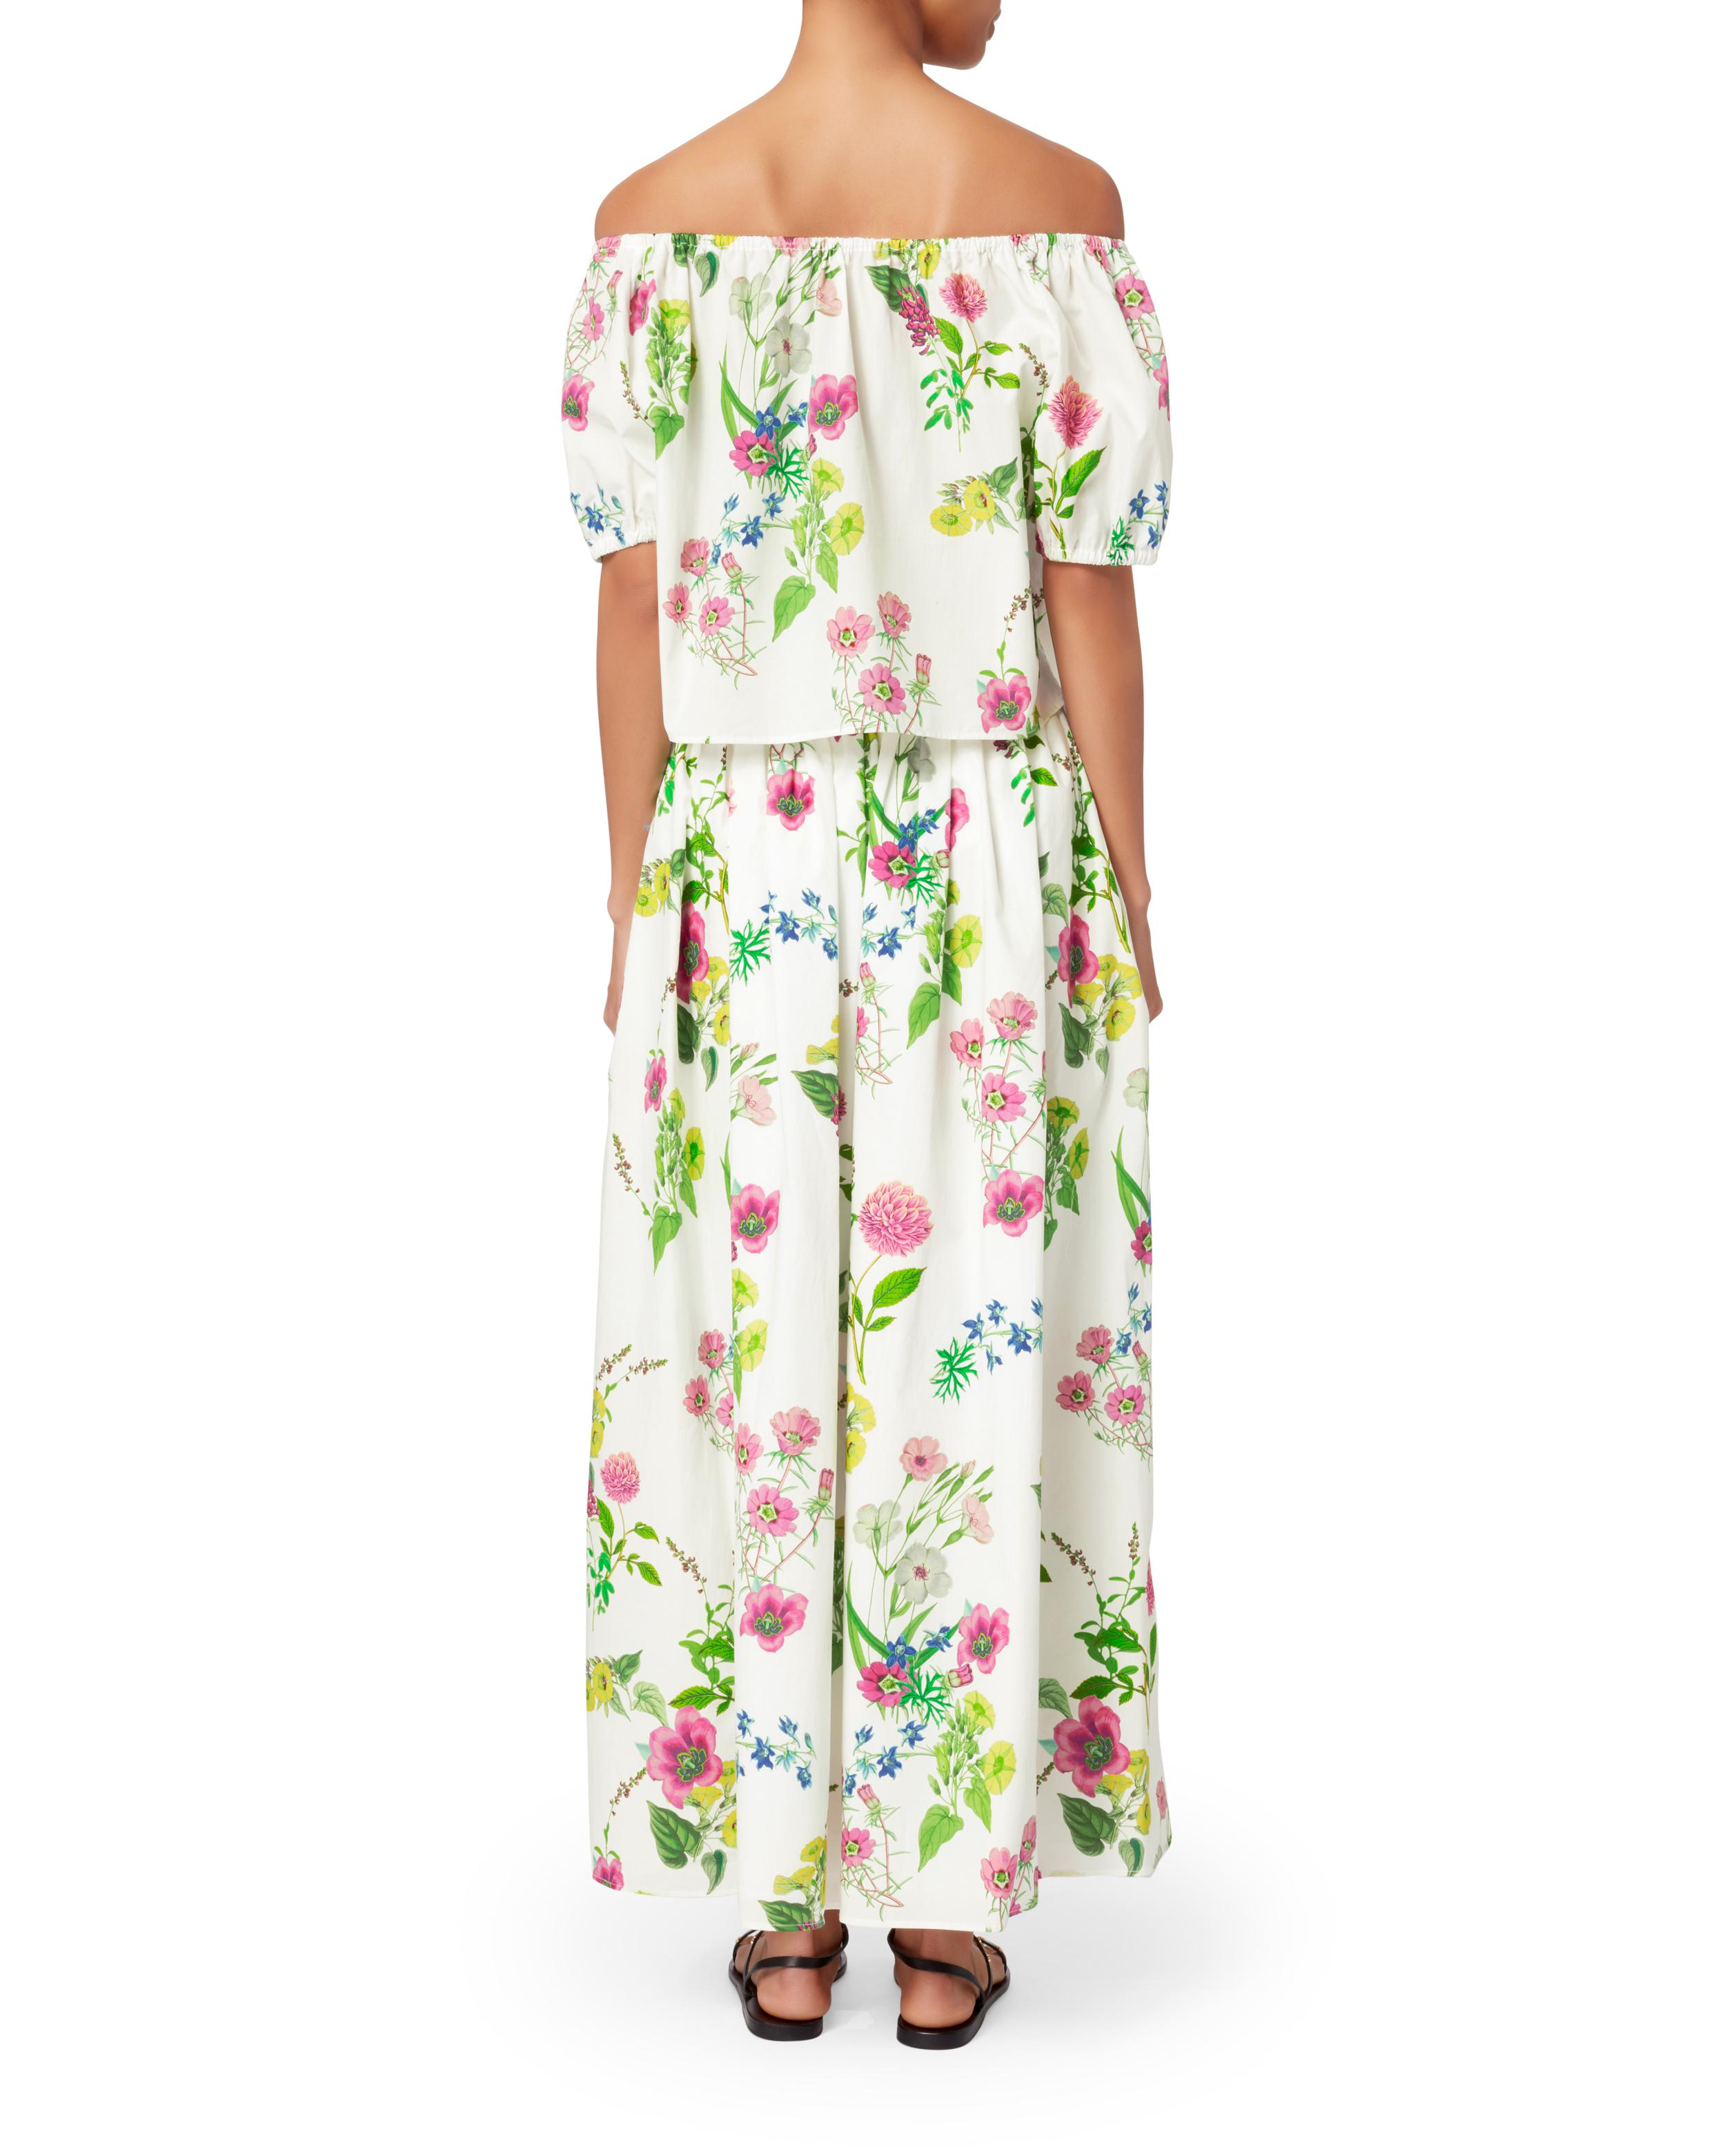 779e5174e6536e Lyst - MDS Stripes Floral Off Shoulder Crop Top in Green